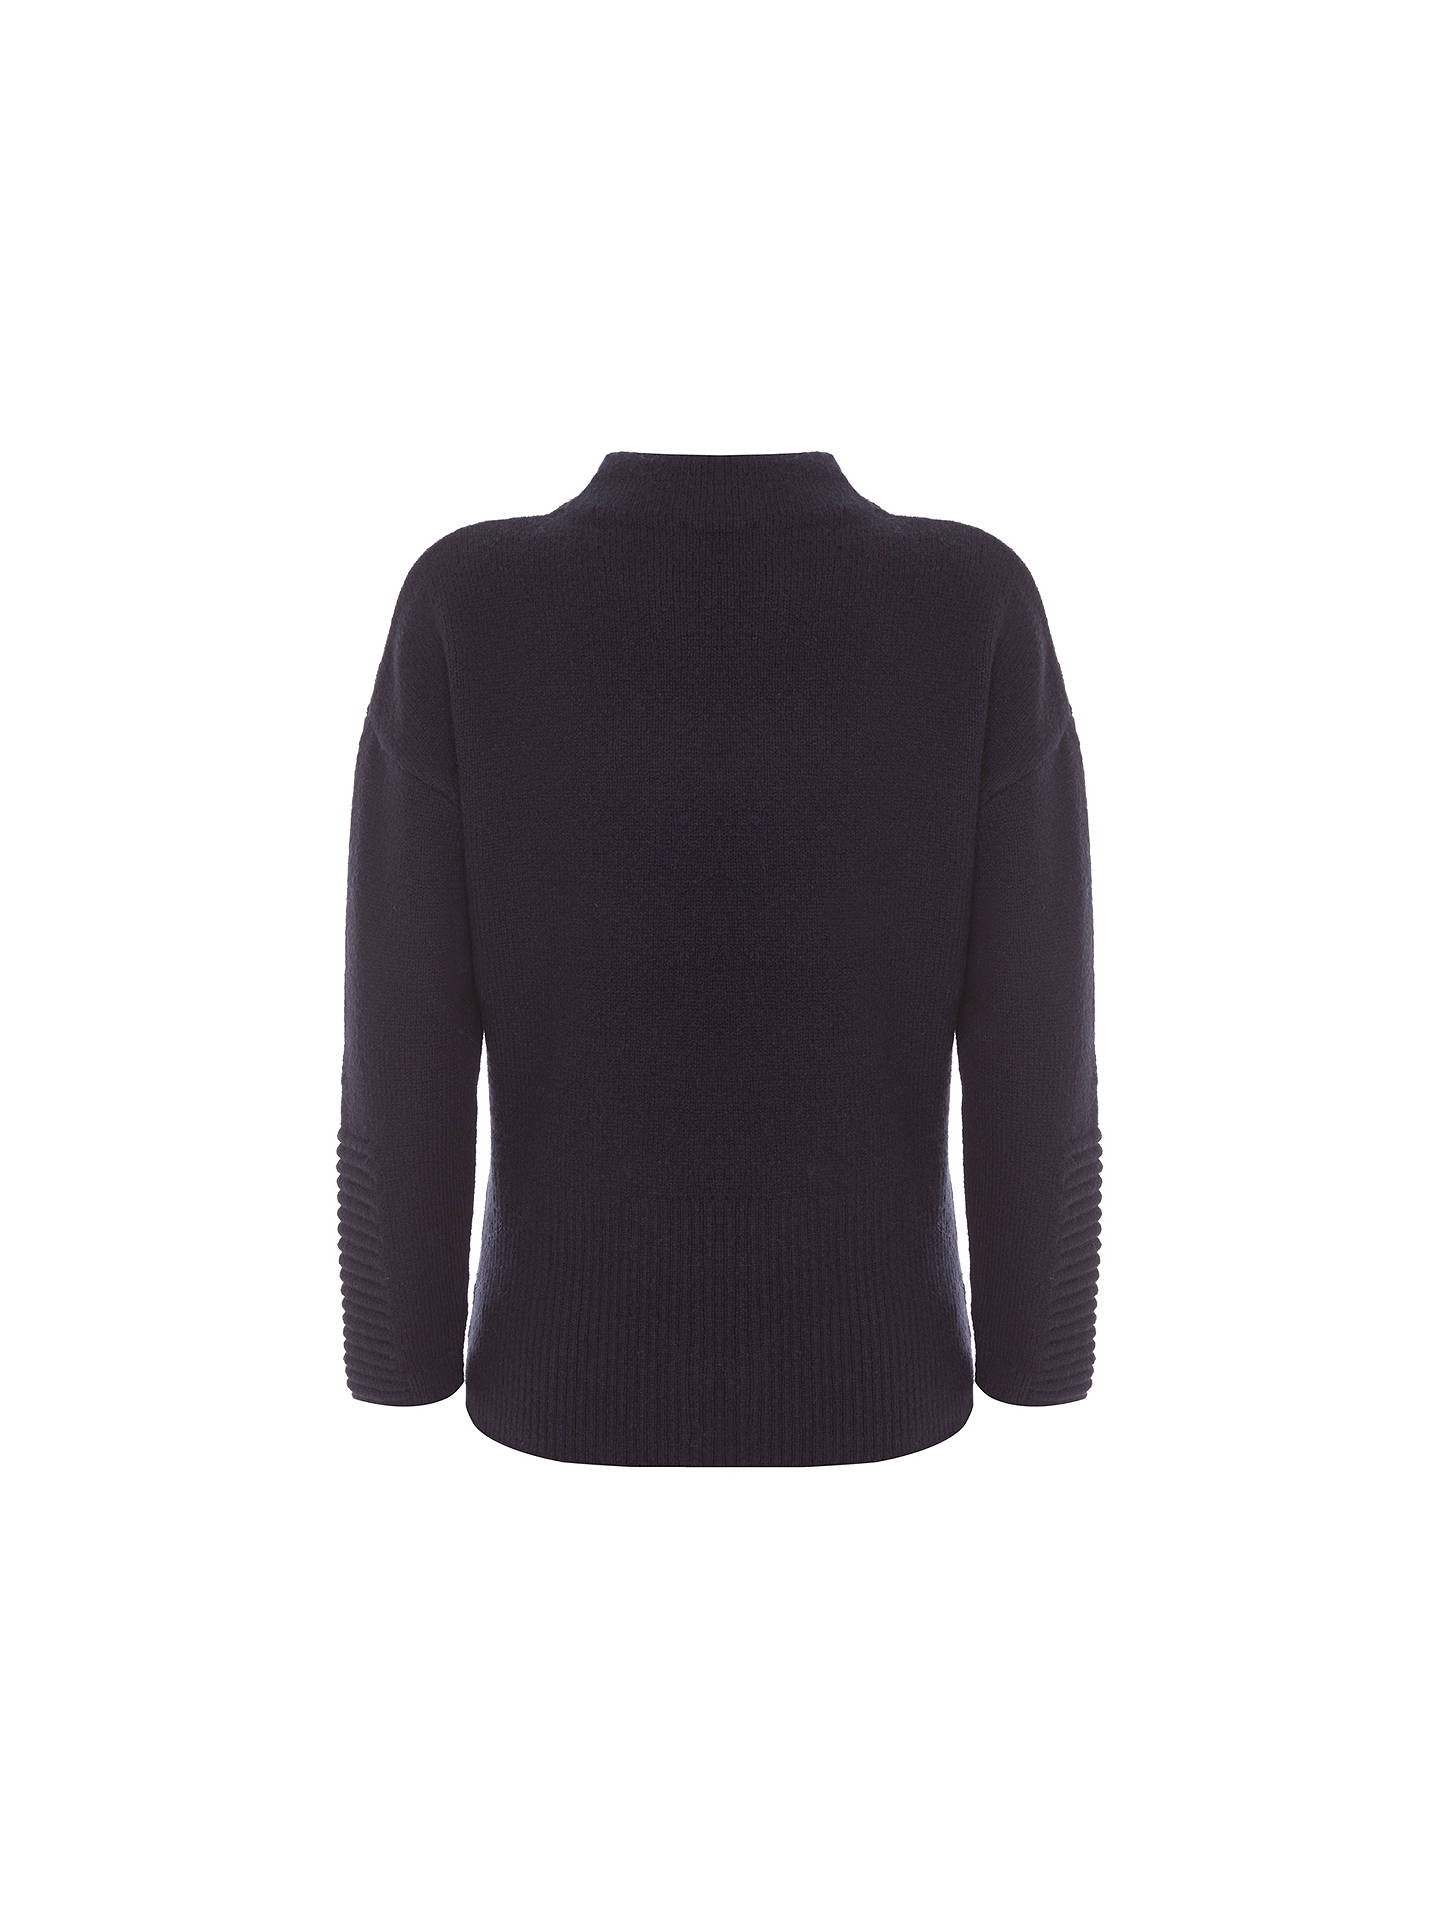 BuyMint Velvet Rib Path Boxy Knitted Jumper, Dark Blue, 6 Online at johnlewis.com